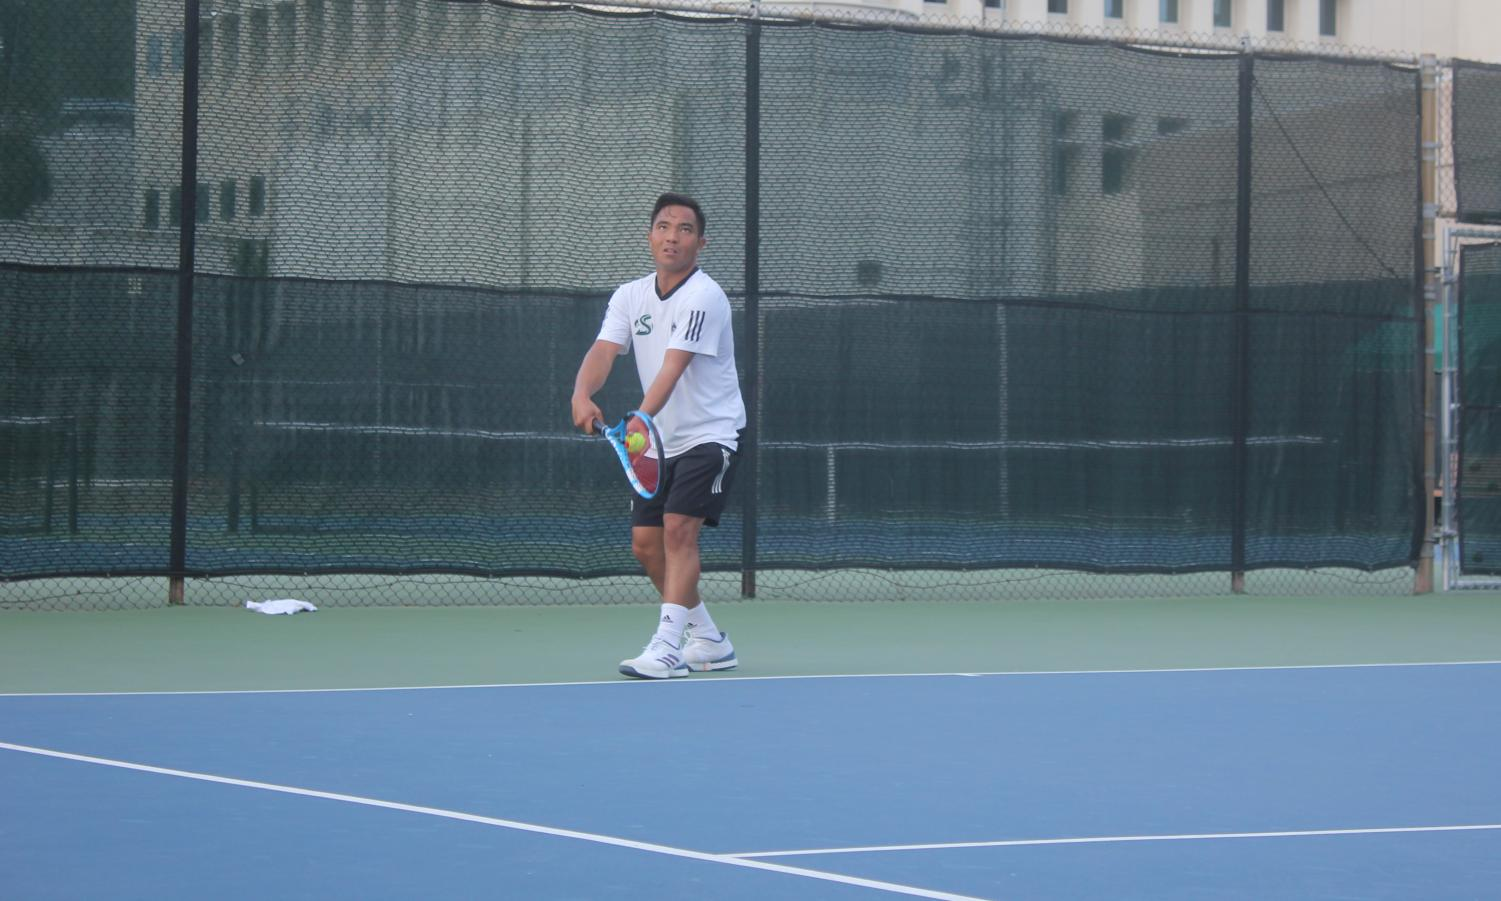 Sac State senior Hermont Legaspi prepares to serve during a singles match against Eastern Washington at the Sacramento State Courts on Friday, Jan. 24. The Hornets defeated Eastern Washington 5-2.